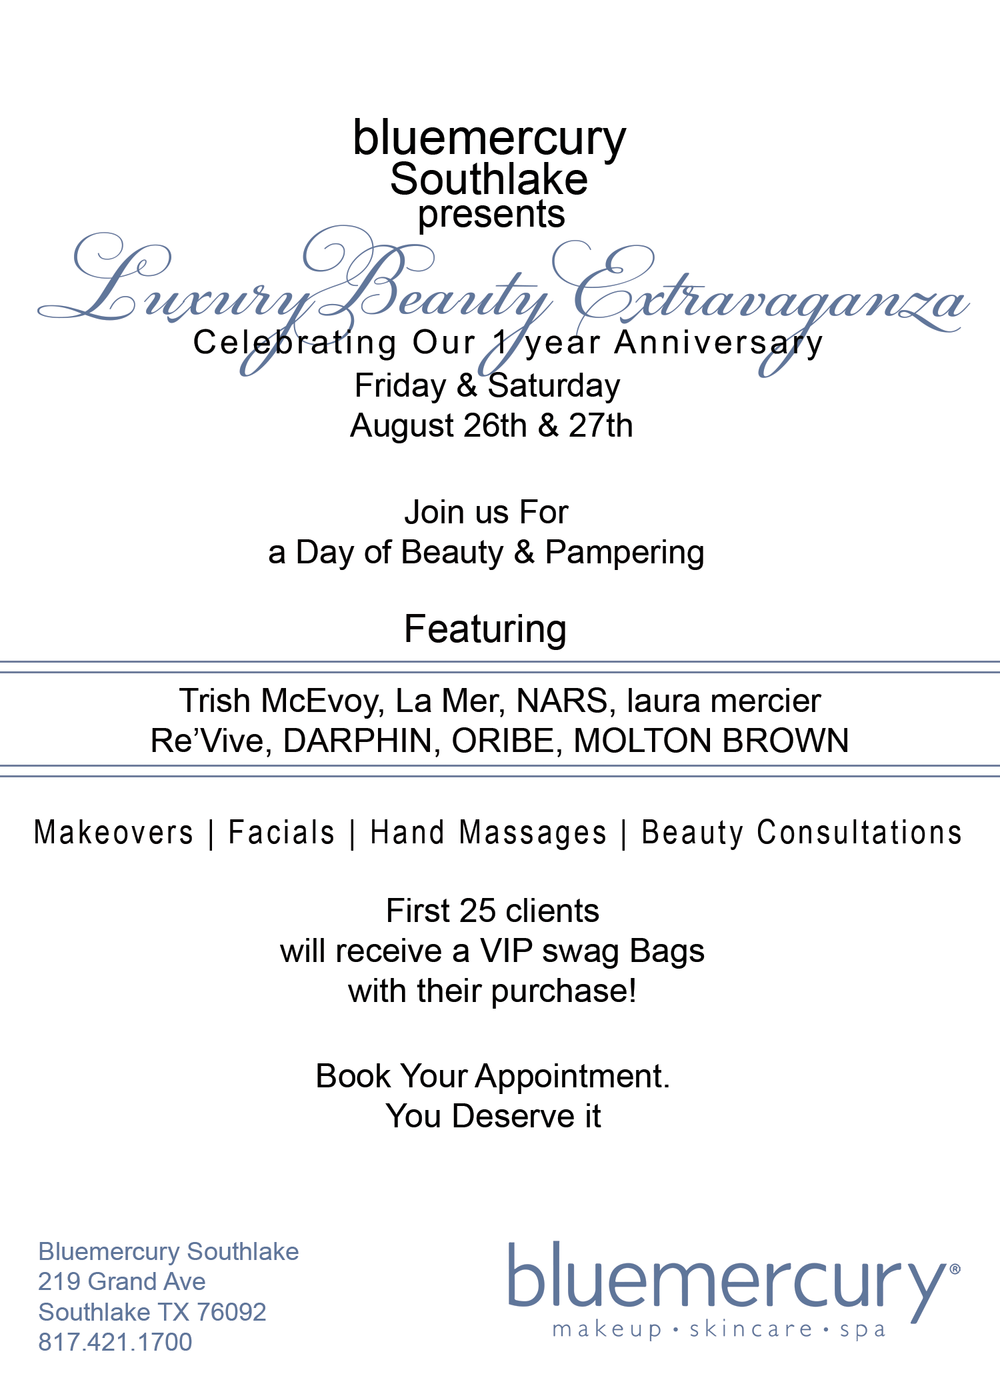 DFW Beauty Events: Blue Mercury